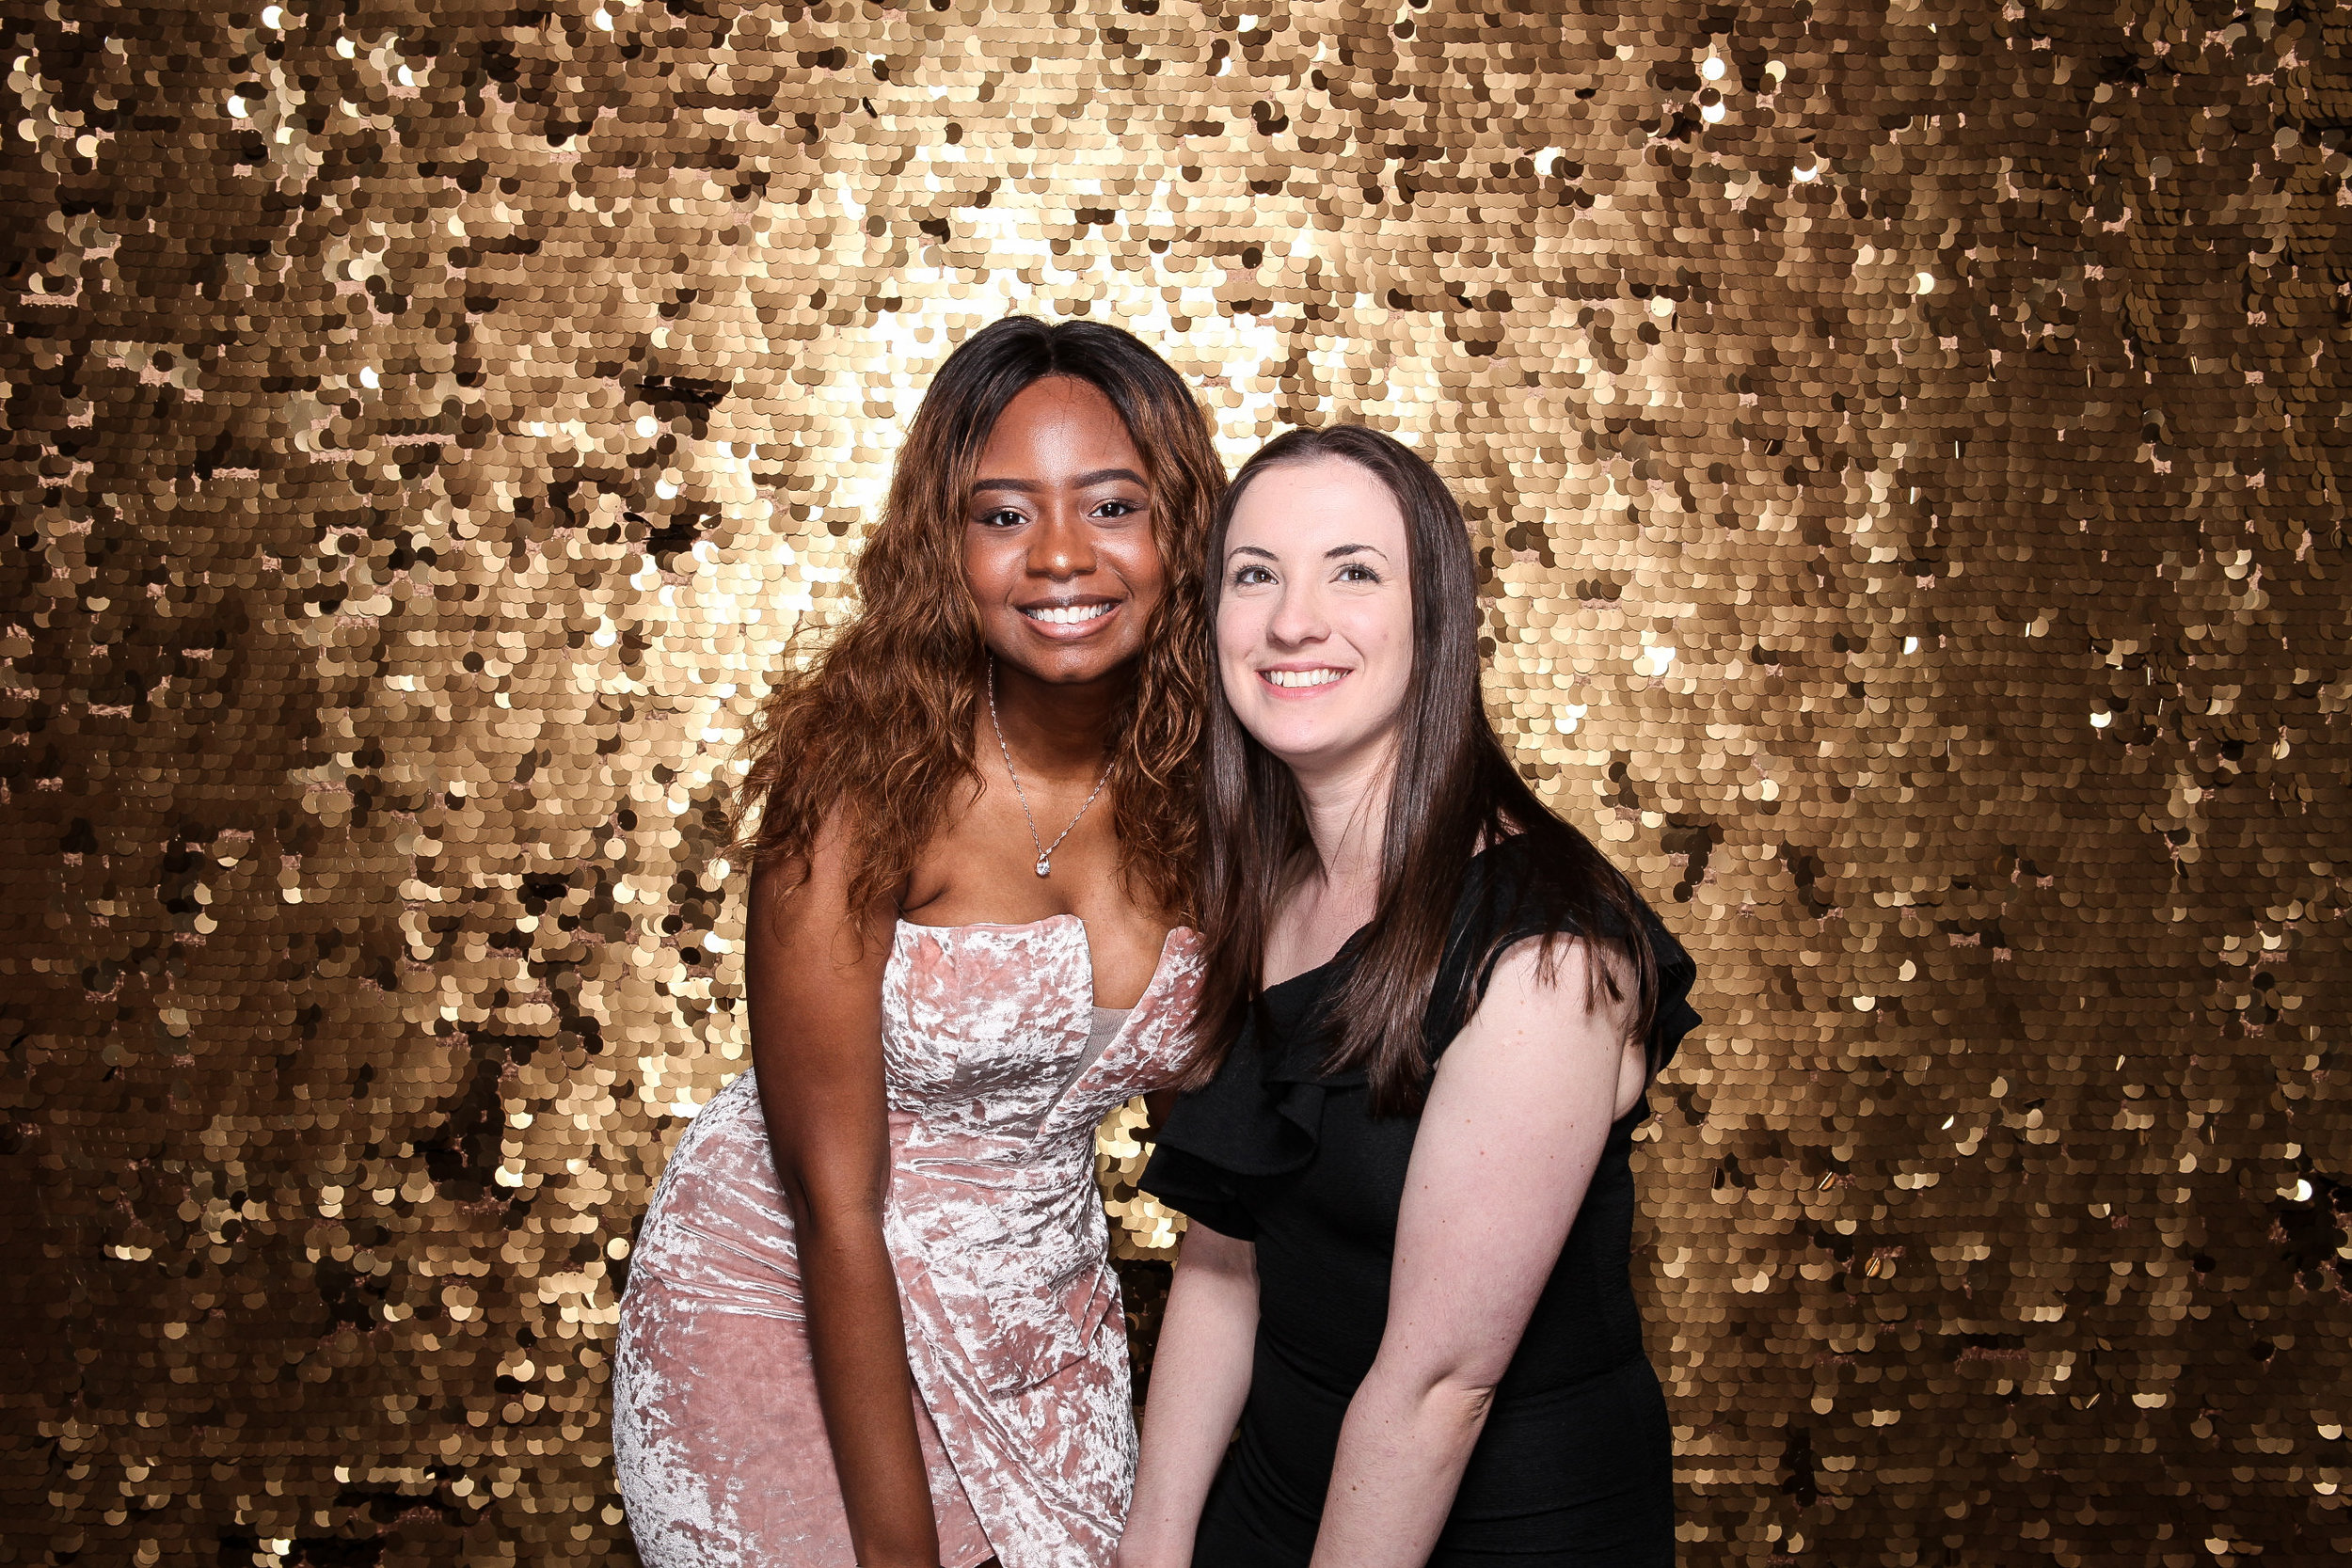 20190503_Adelphi_Senior_Formal-167.jpg